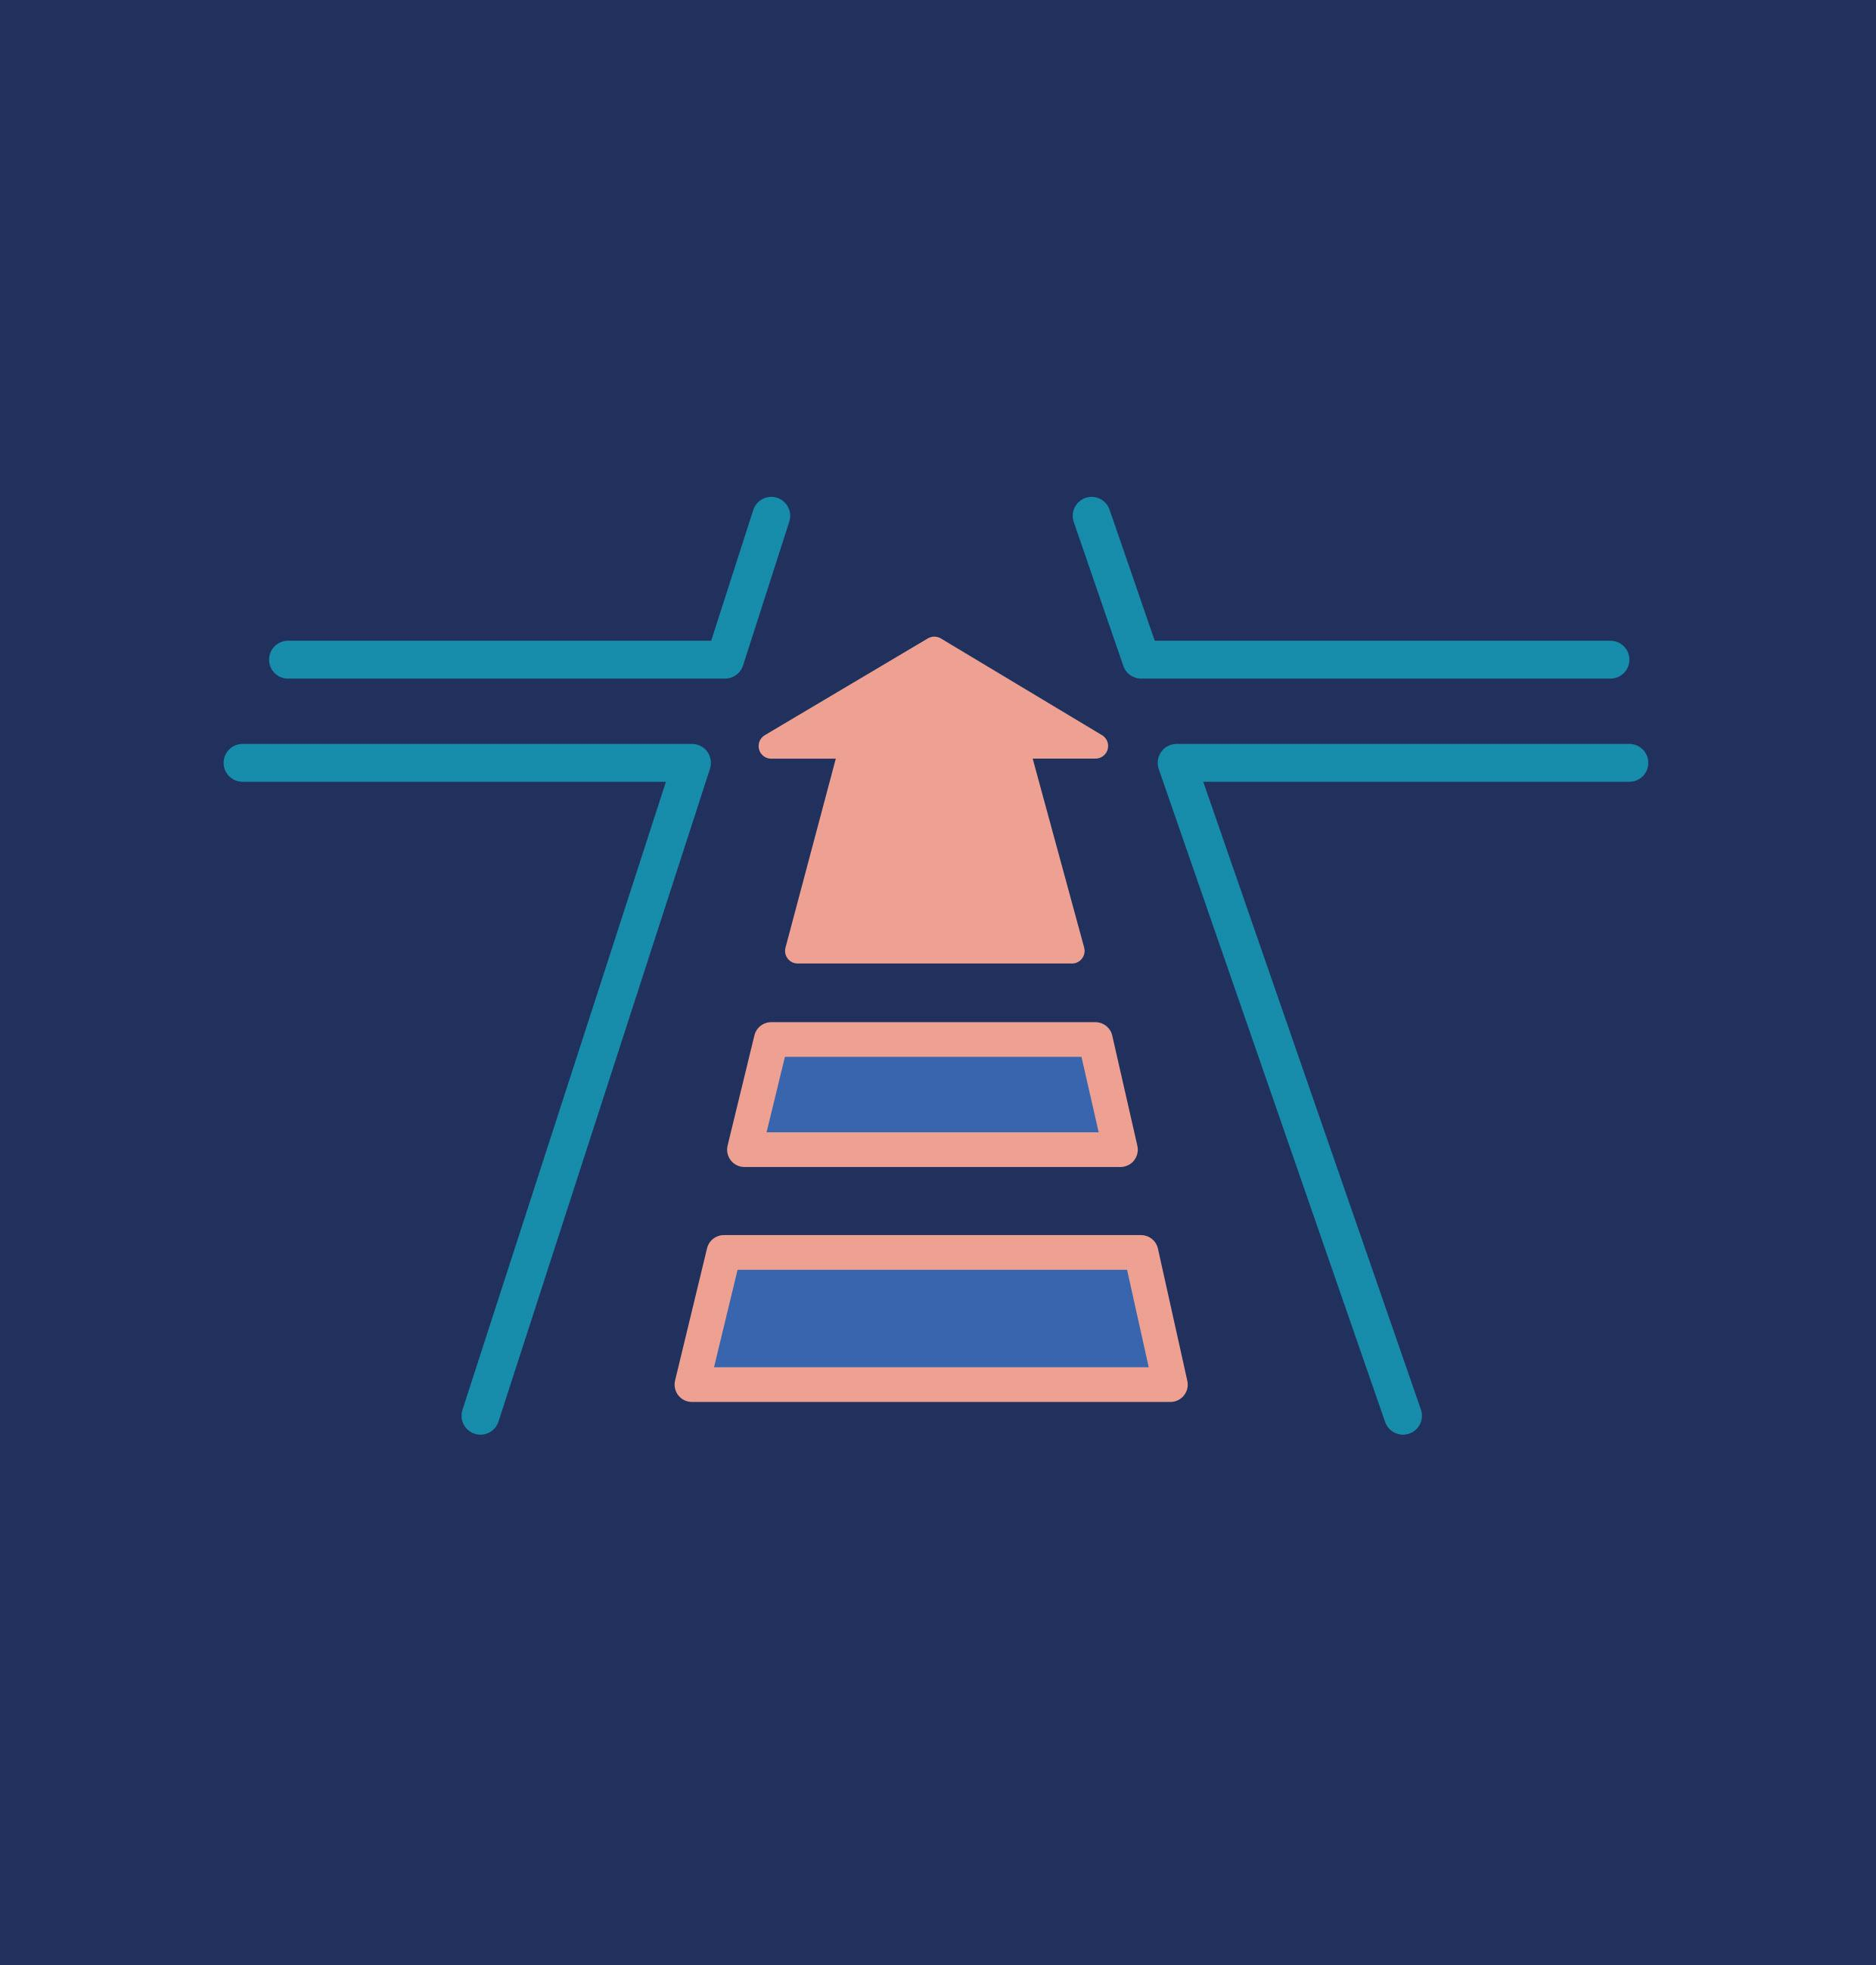 Road with arrow graphic